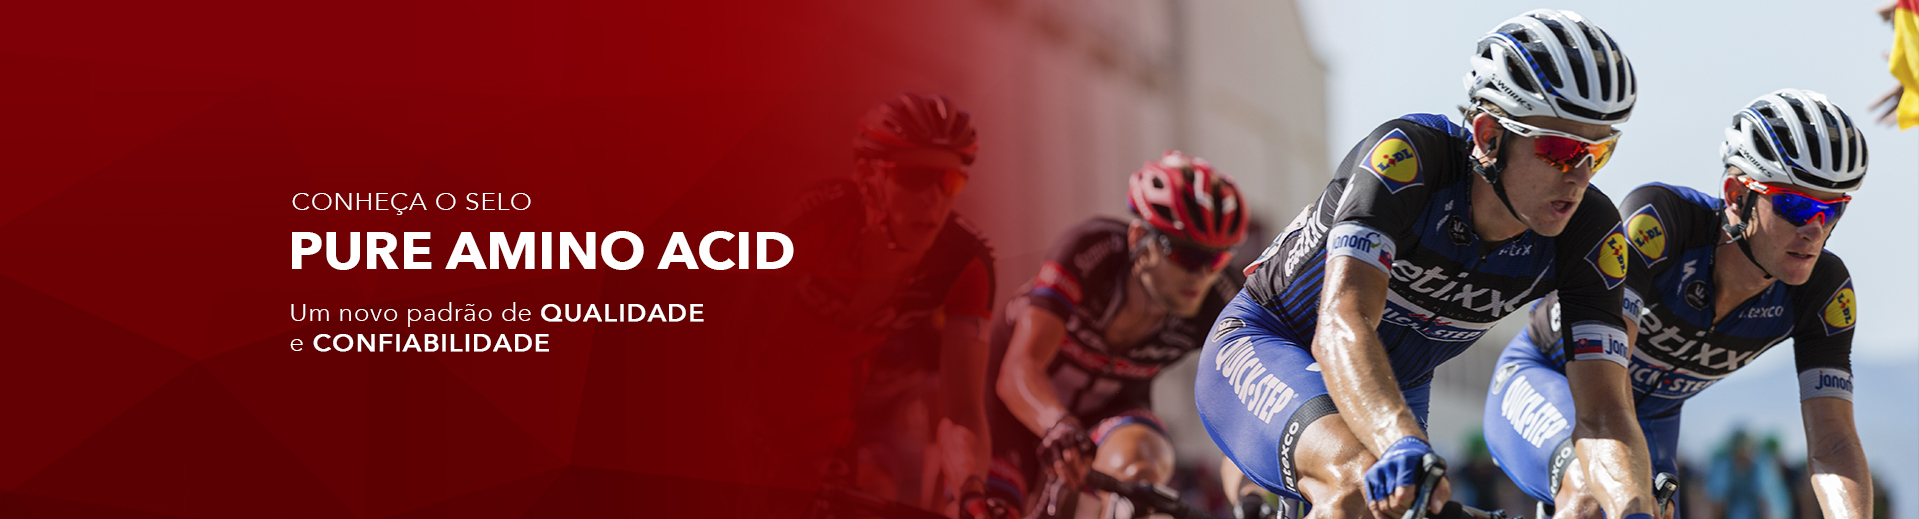 Banner Ciclismo